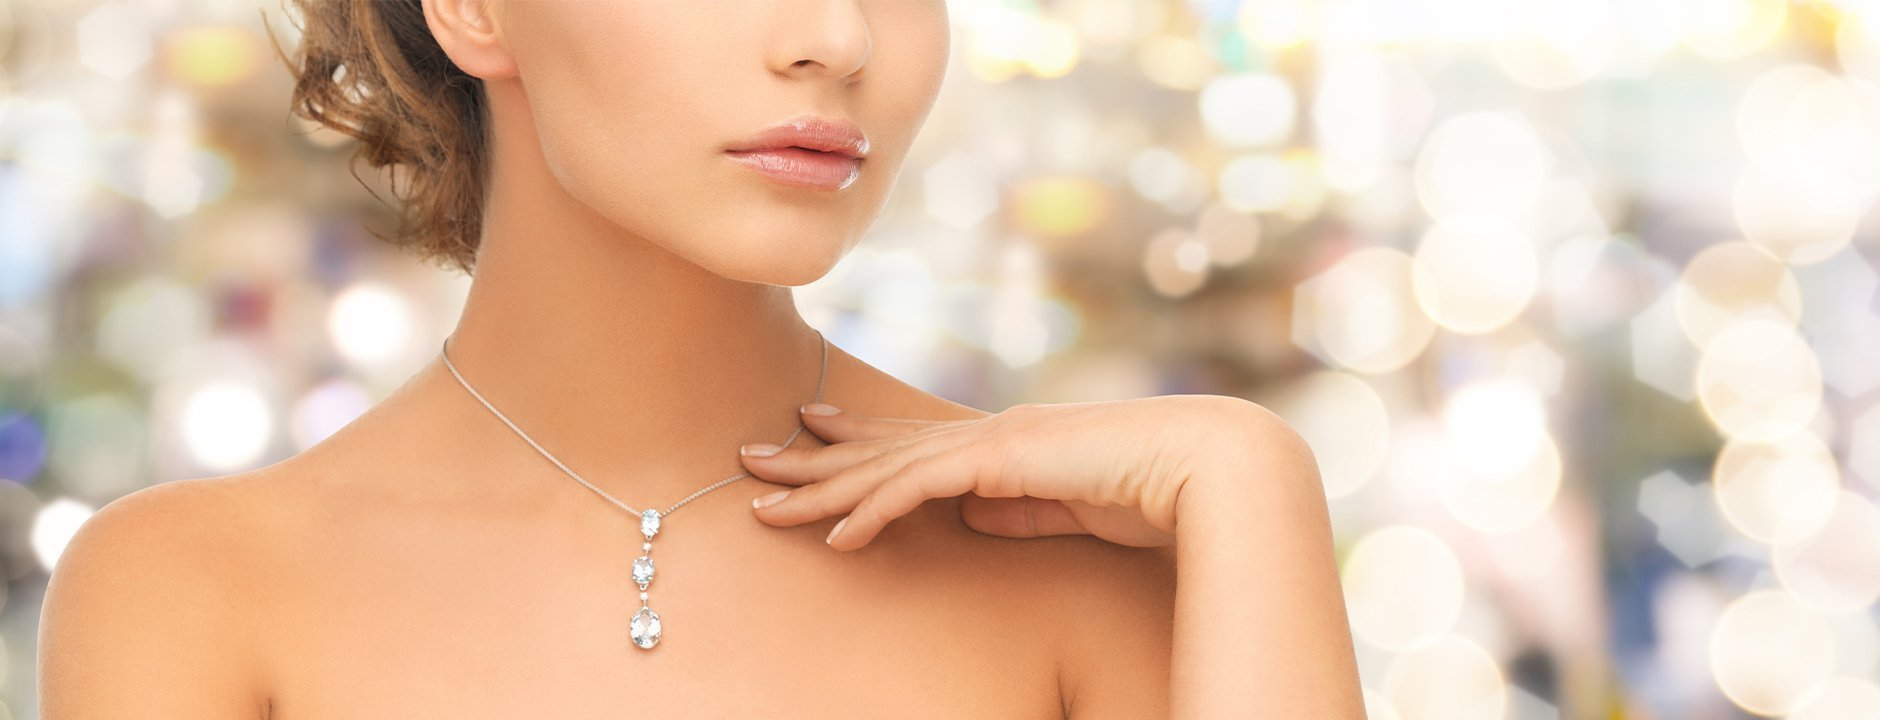 Shop for Diamond necklaces and pendants on Sophia Jewelers